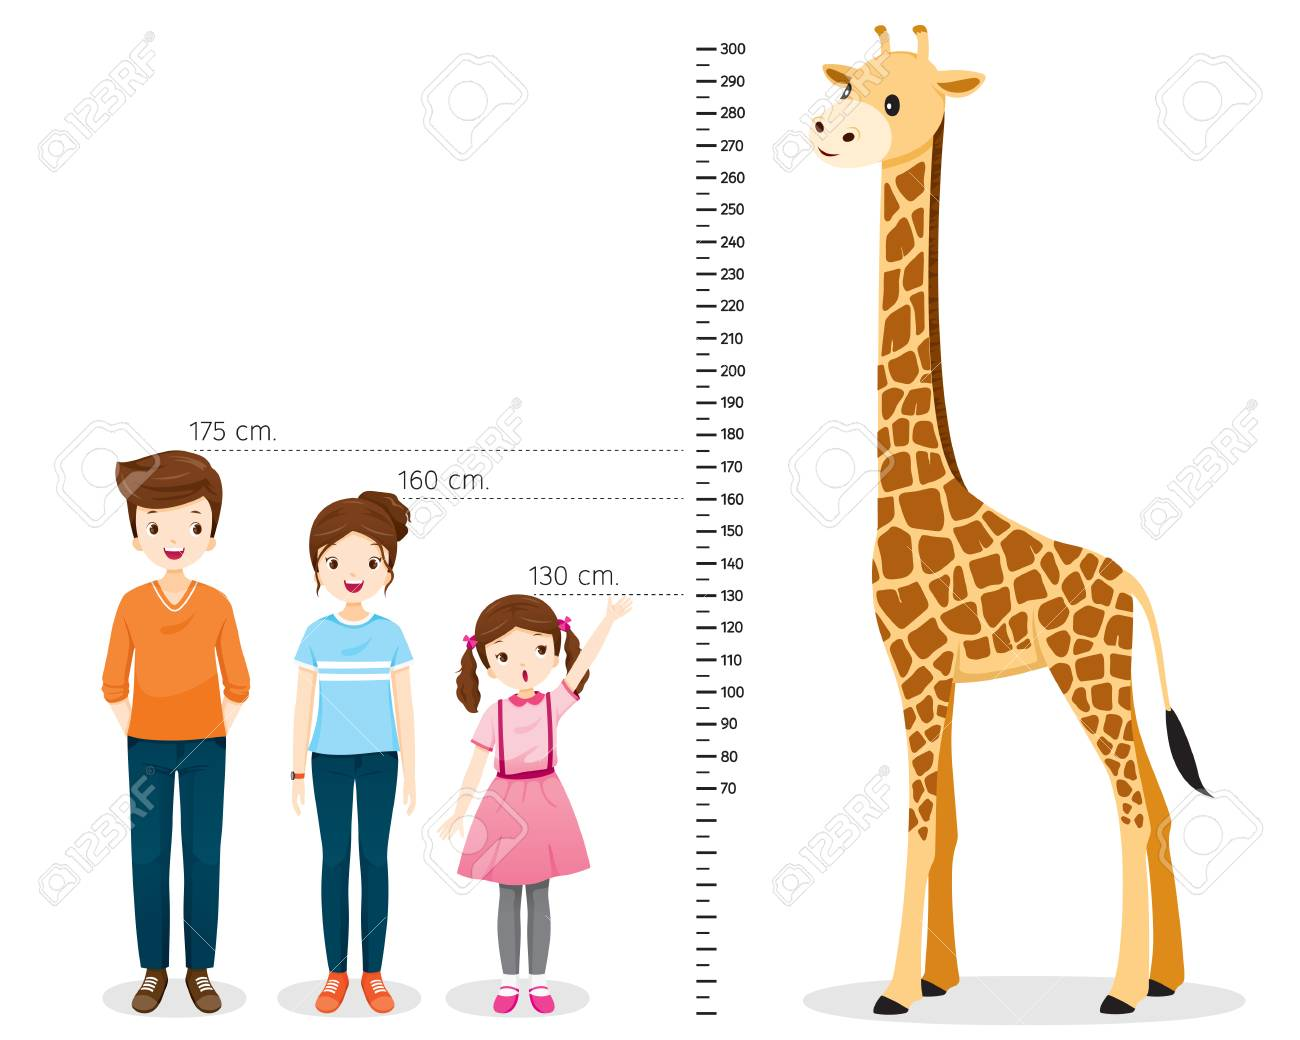 Man, Woman, Girl Measuring Height With Giraffe, Tall, Healthy, Care, People, Lifestyle - 121826791